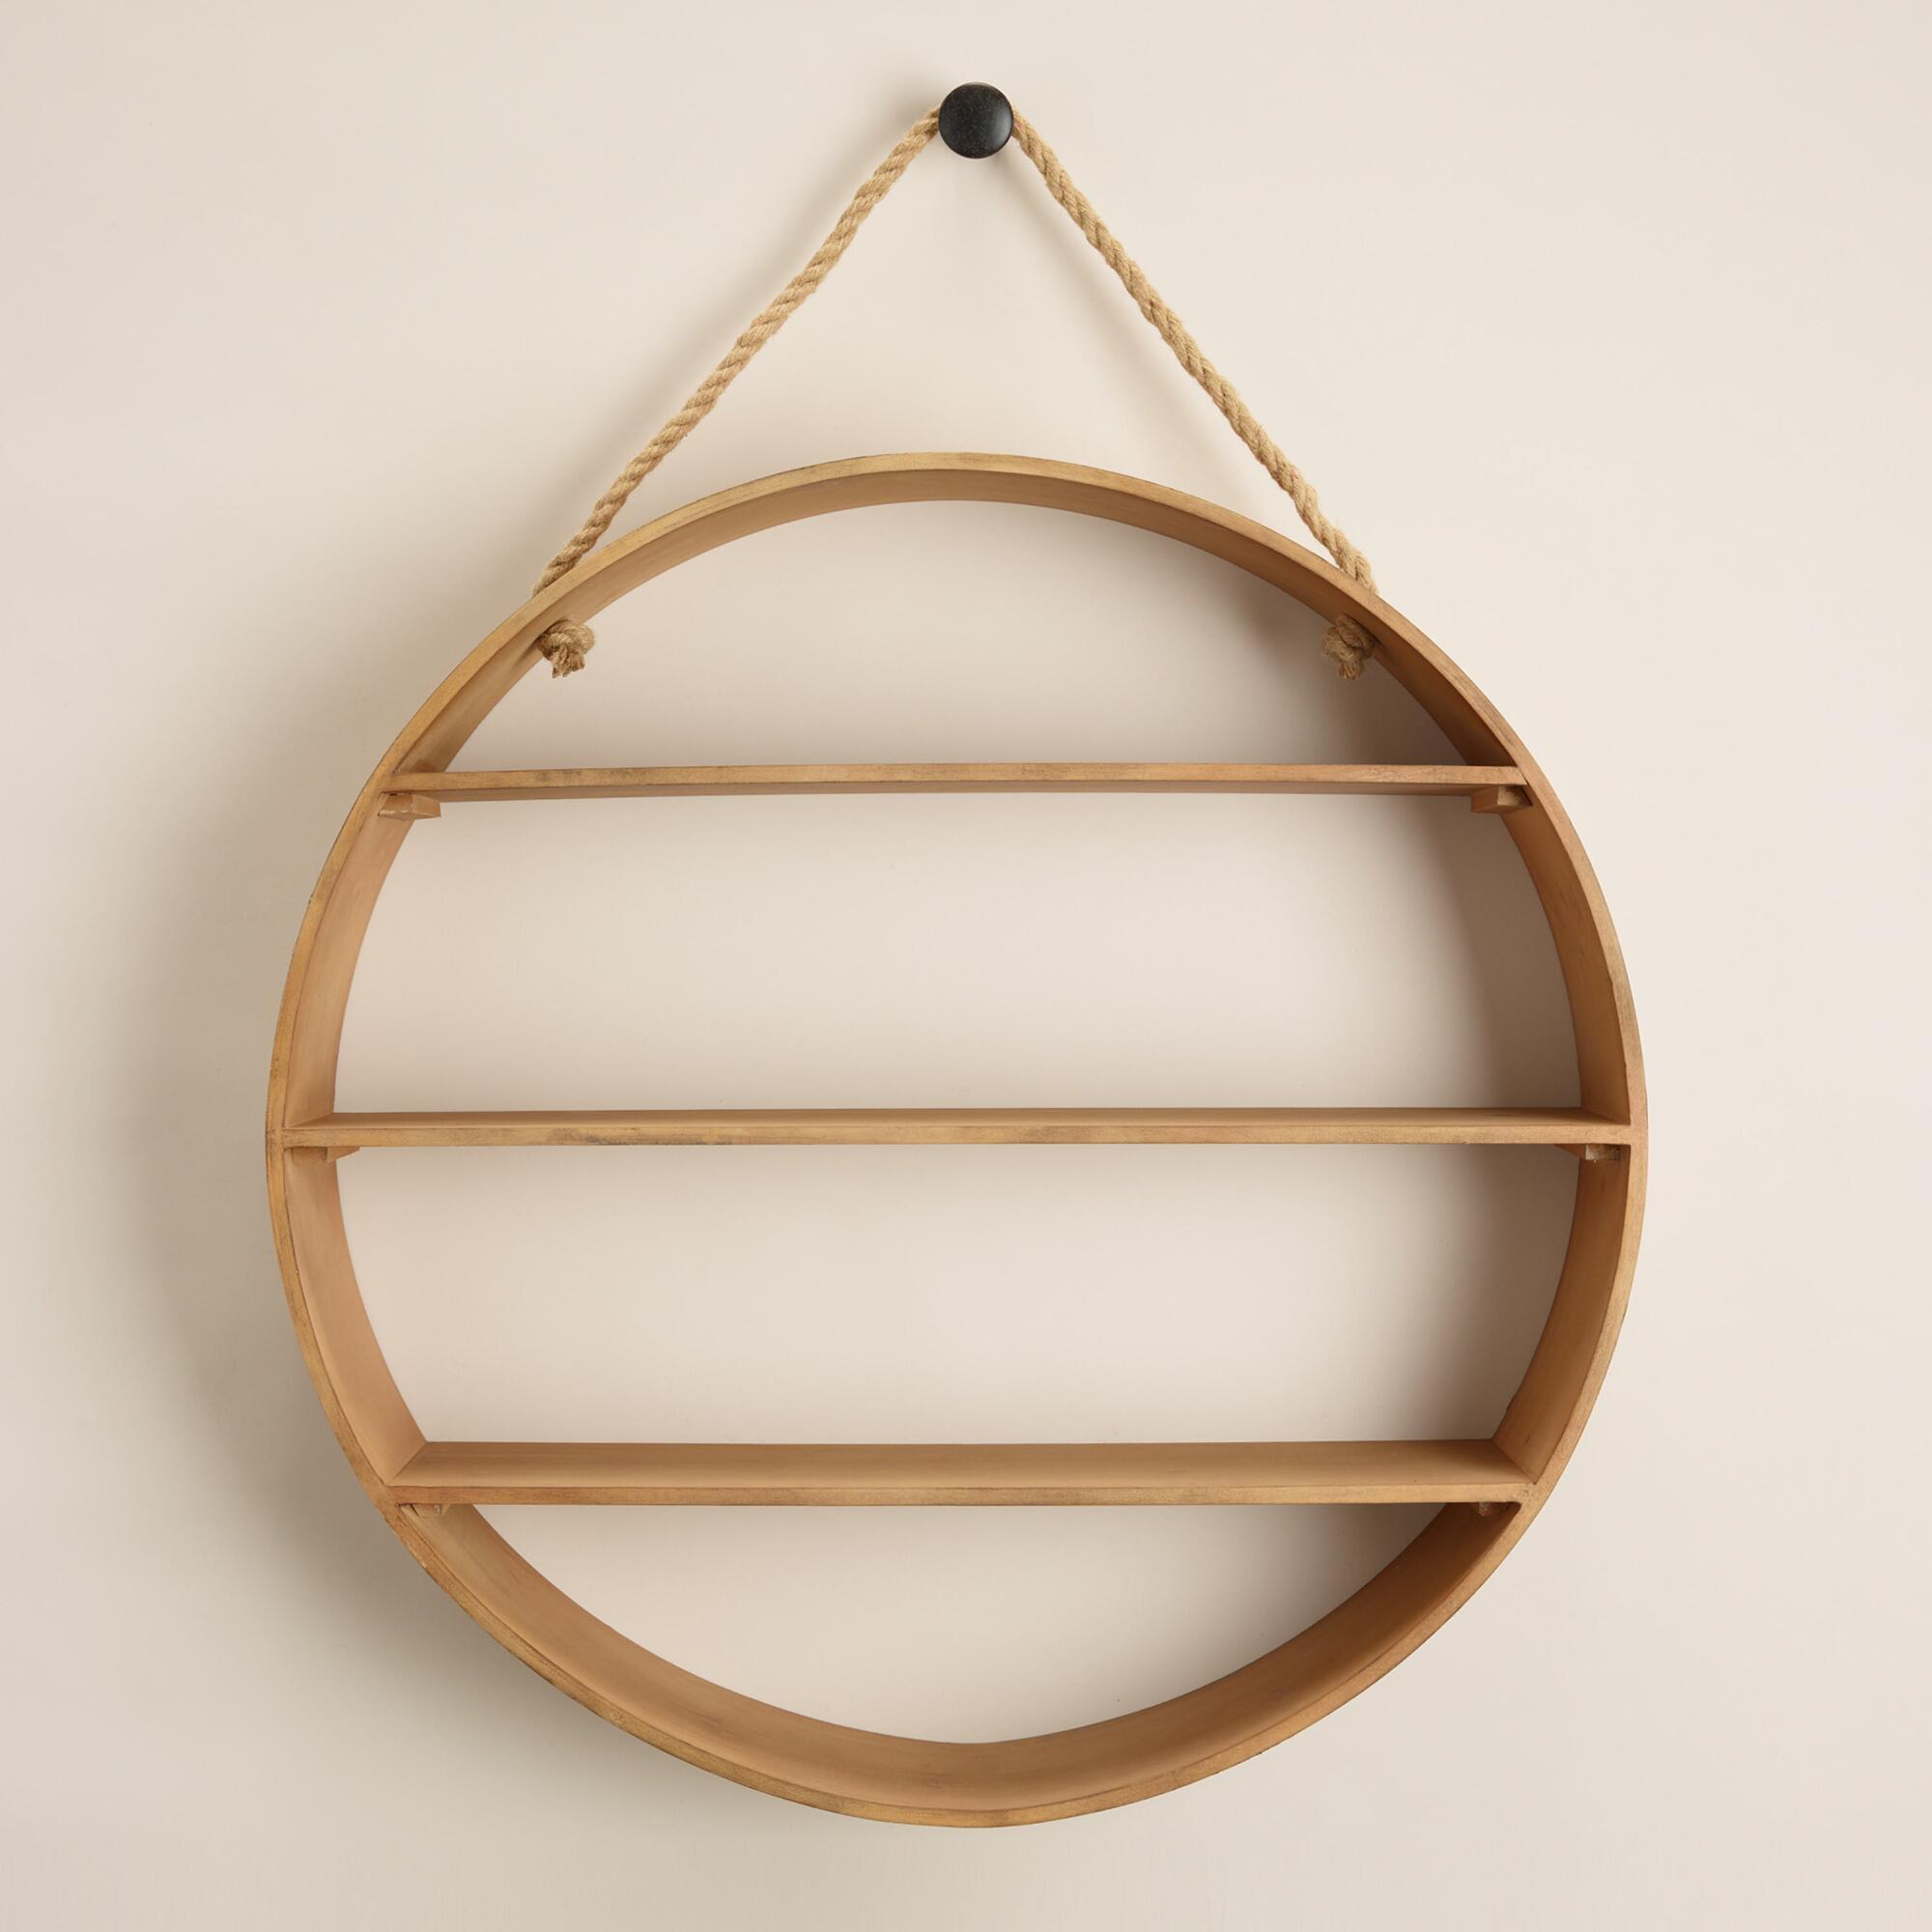 Natural Round Wood Wall Shelf World Market